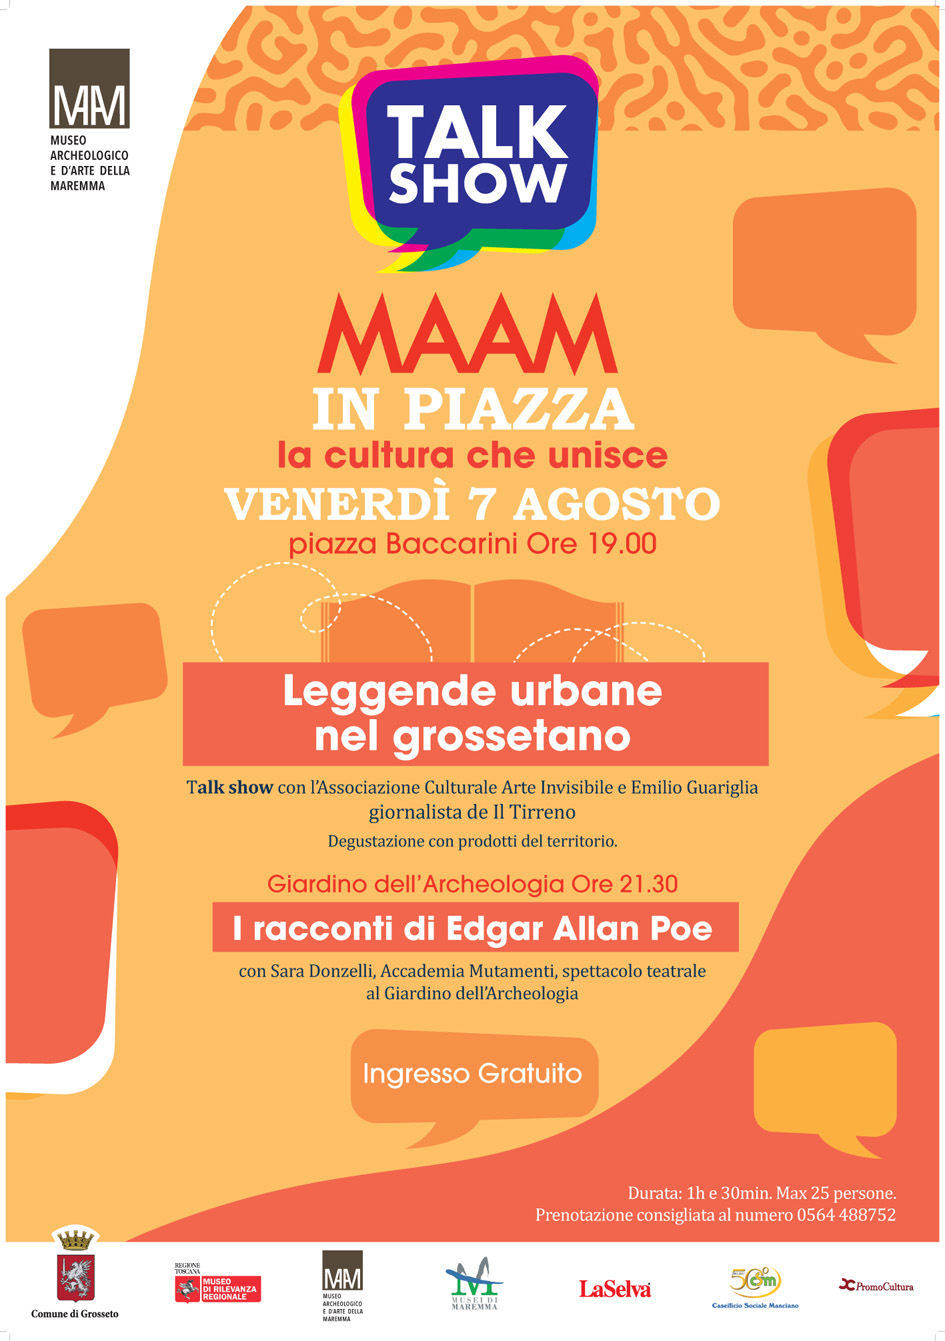 MAAM in piazza